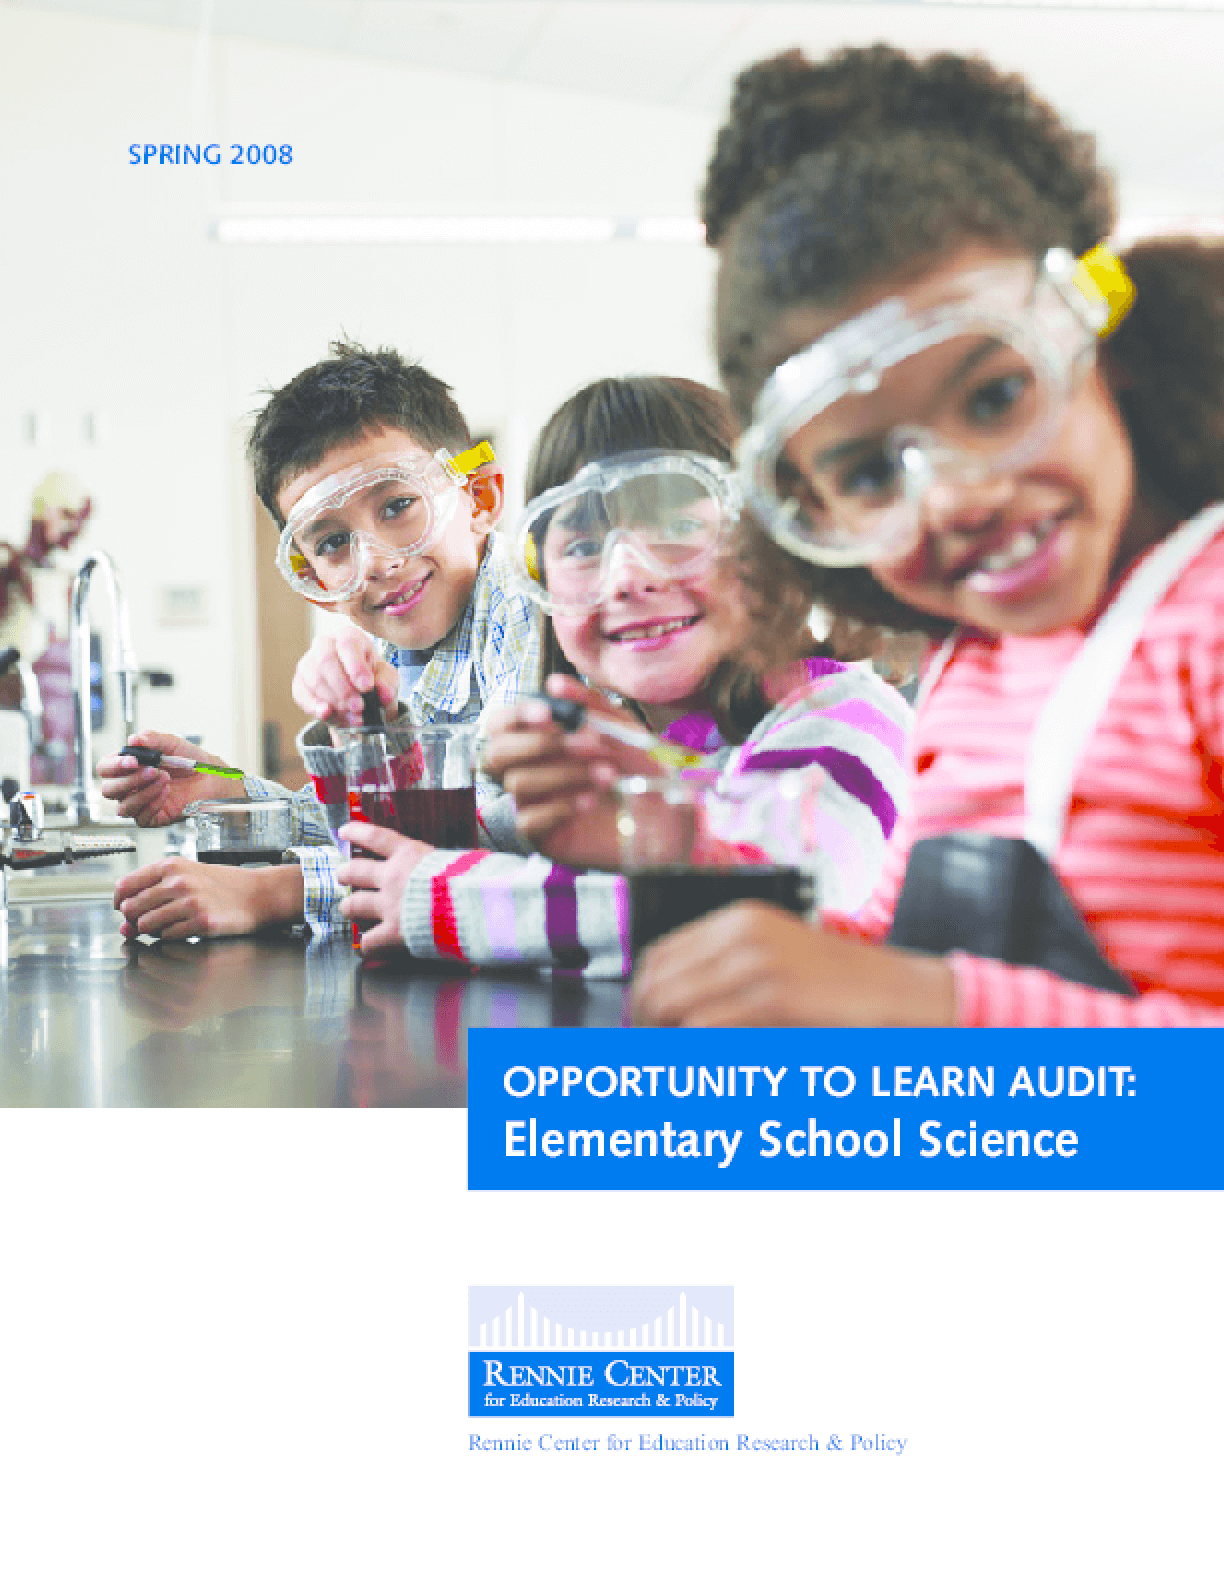 Opportunity to Learn Audit: Elementary School Science